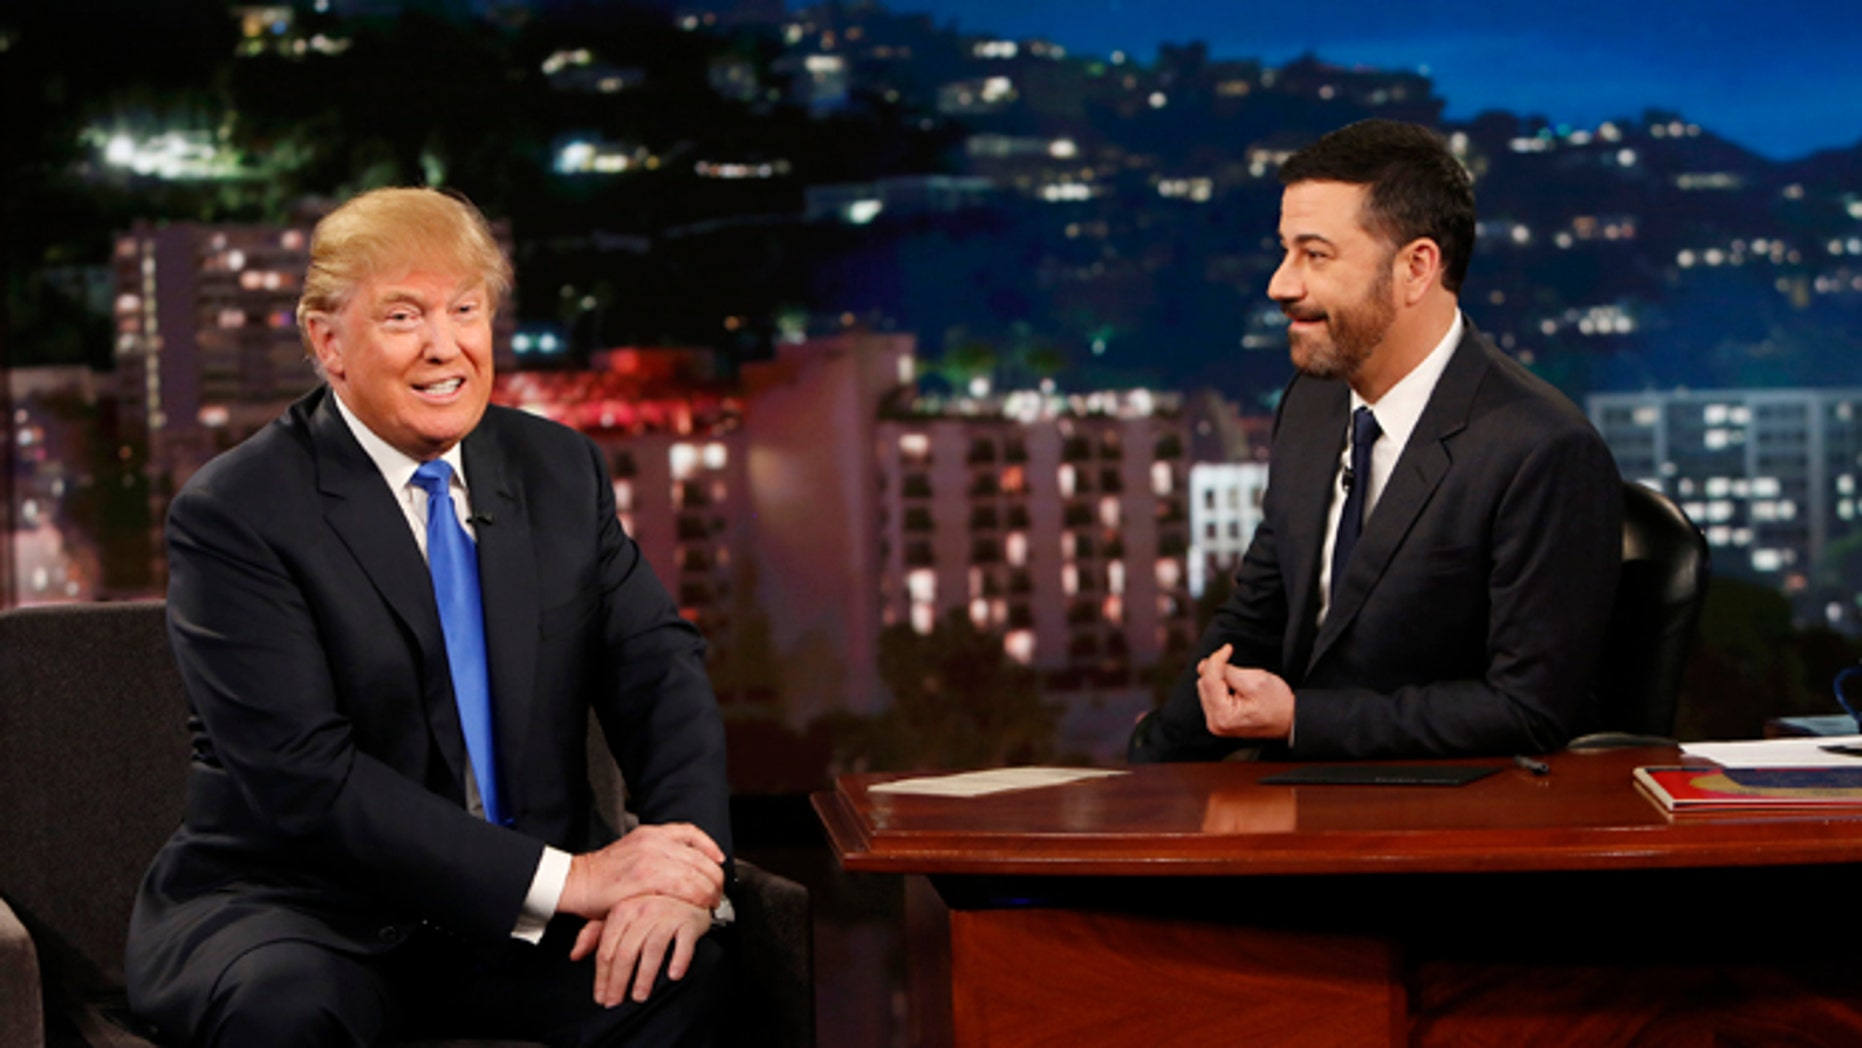 This photo provided by ABC shows guest Republican Presidential candidate Donald Trump, left, with host Jimmy Kimmel, on Jimmy Kimmel Live on Wednesday, Dec. 16, 2015, in Los Angeles. The ABC show airs every weeknight, 11:35 p.m. - 12:41 a.m., ET. (Randy Holmes/ABC via AP)